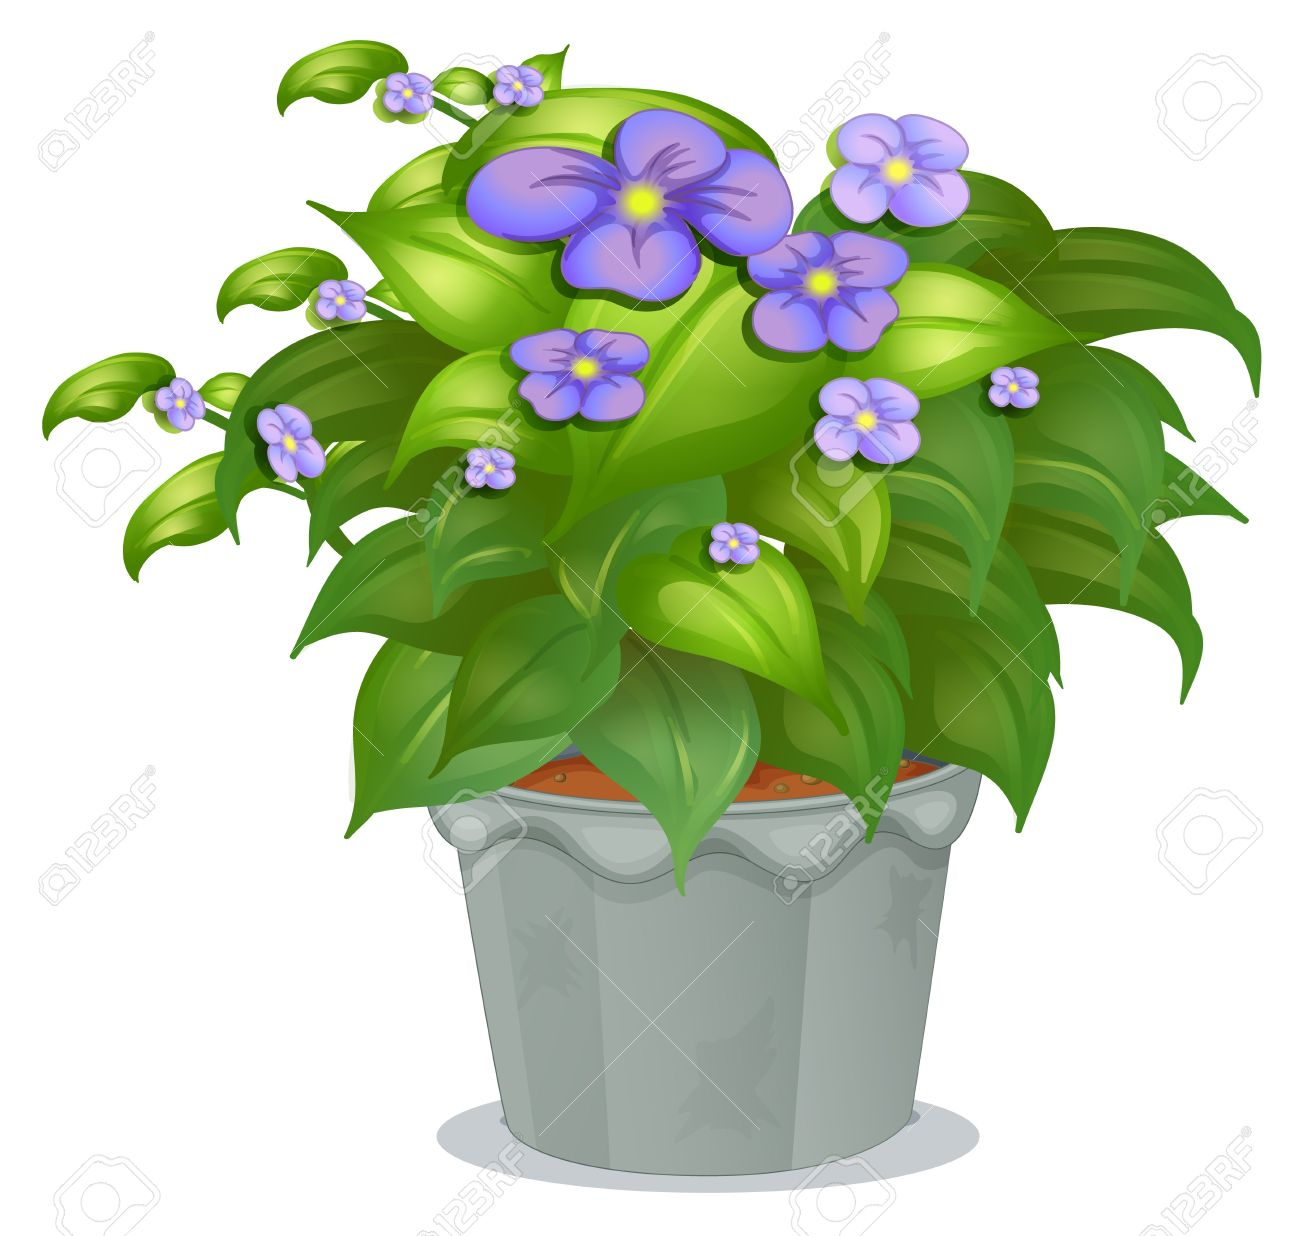 Illustration of a plant with flowers on a white background Stock Vector - 17867445